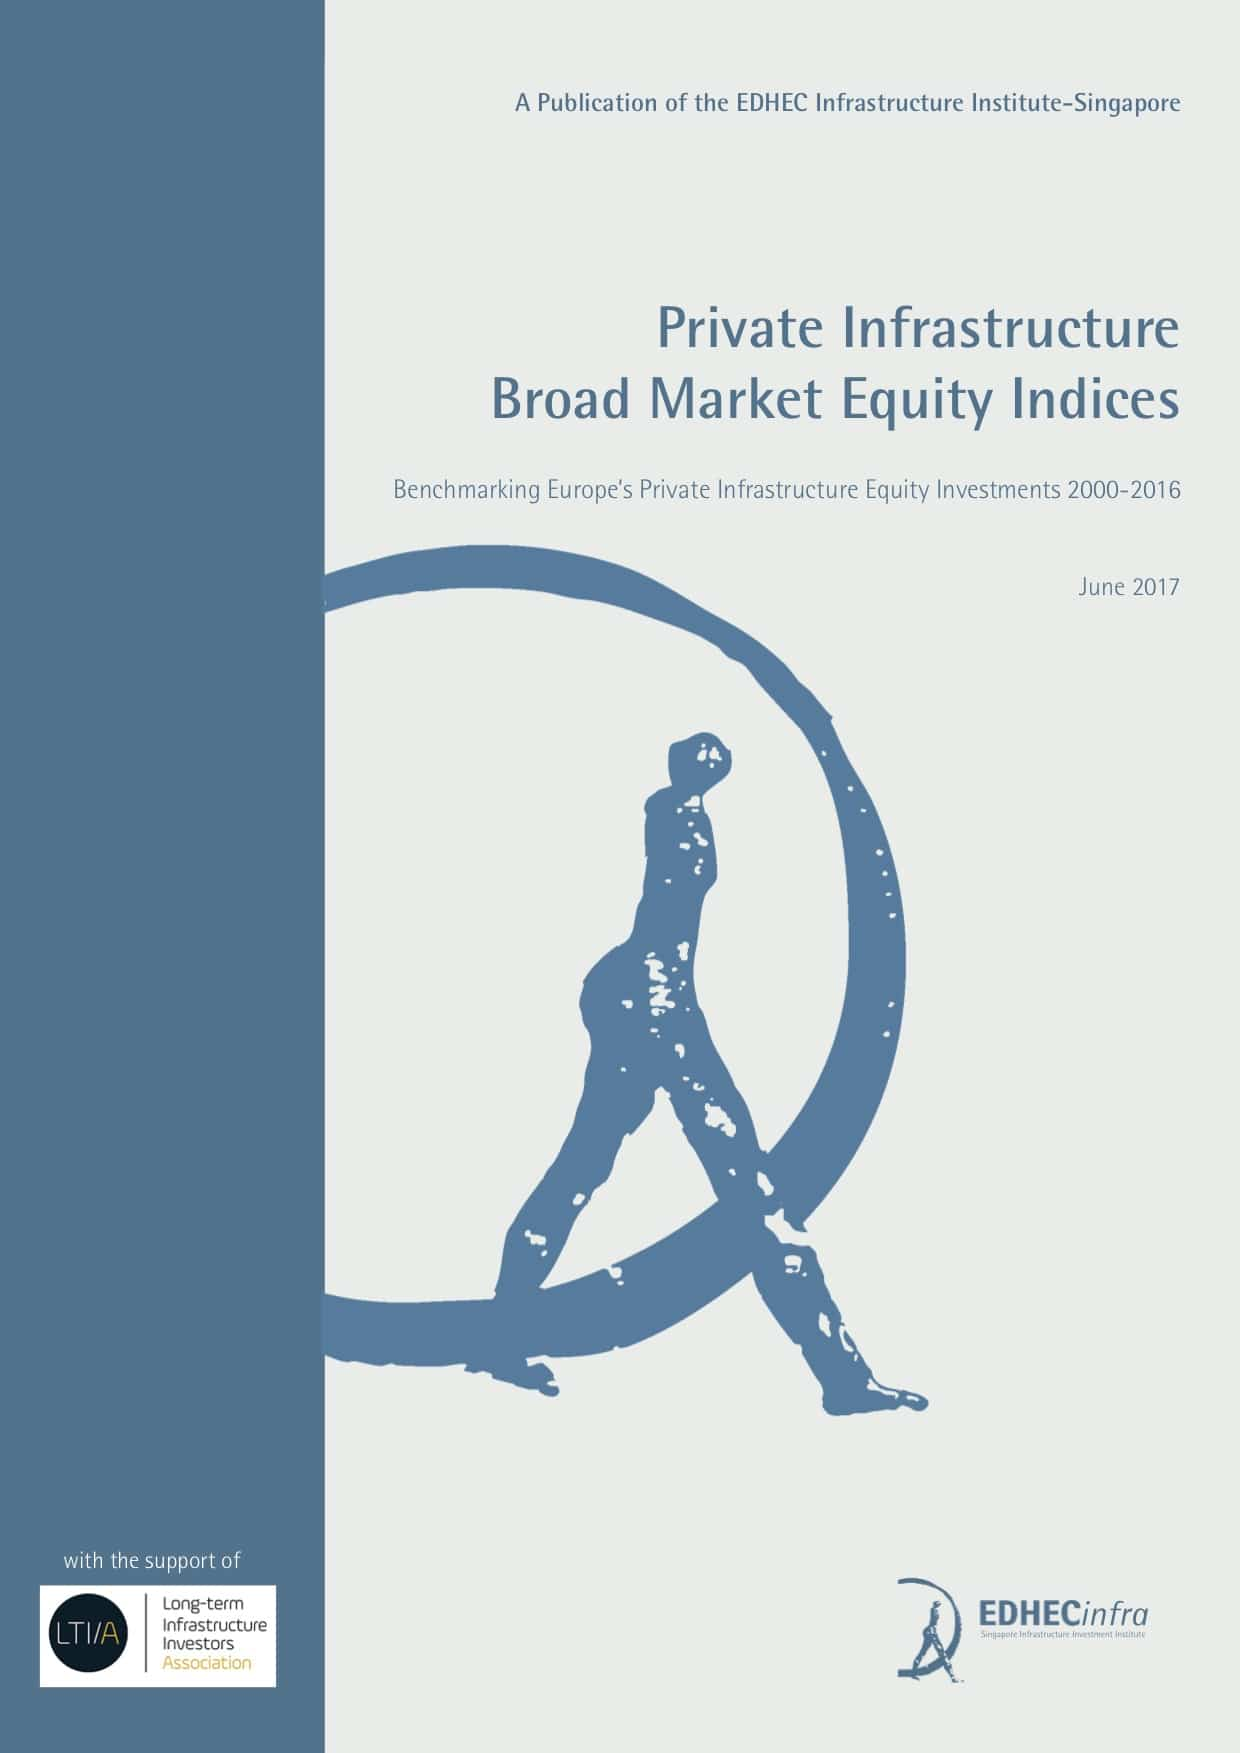 Private Infrastructure Broad Market Equity Indices (Europe, 2000-2016)